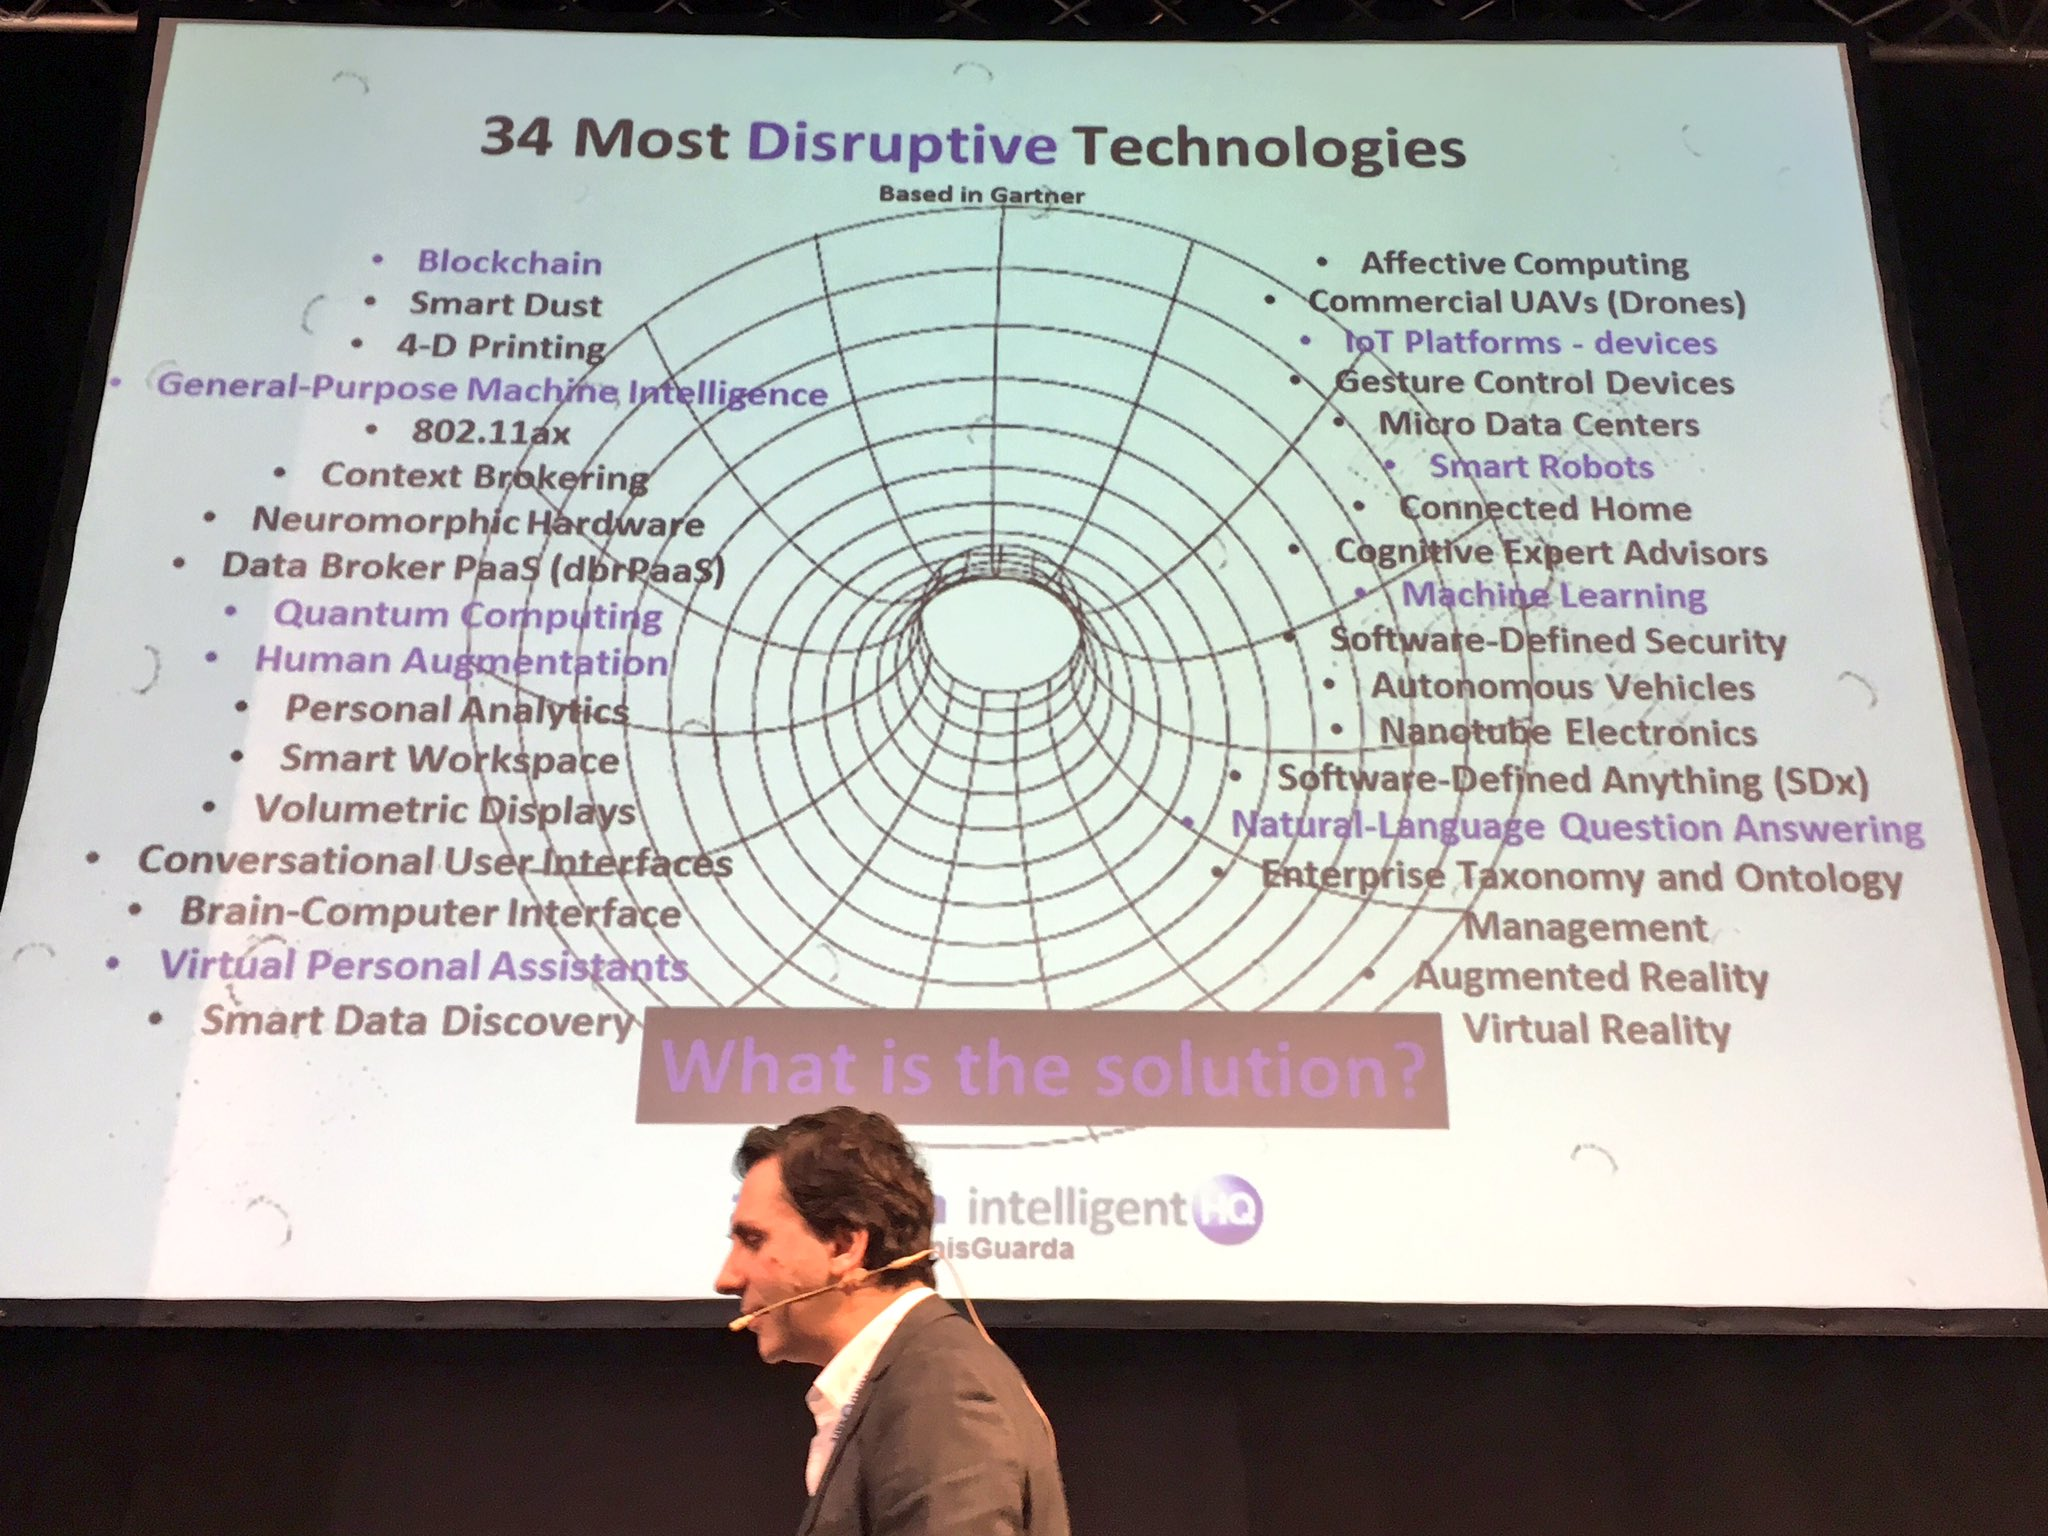 Cool: The 34 Most Disruptive Technologies, presented by @DinisGuarda on #cebiteda https://t.co/jbey1aWFX7